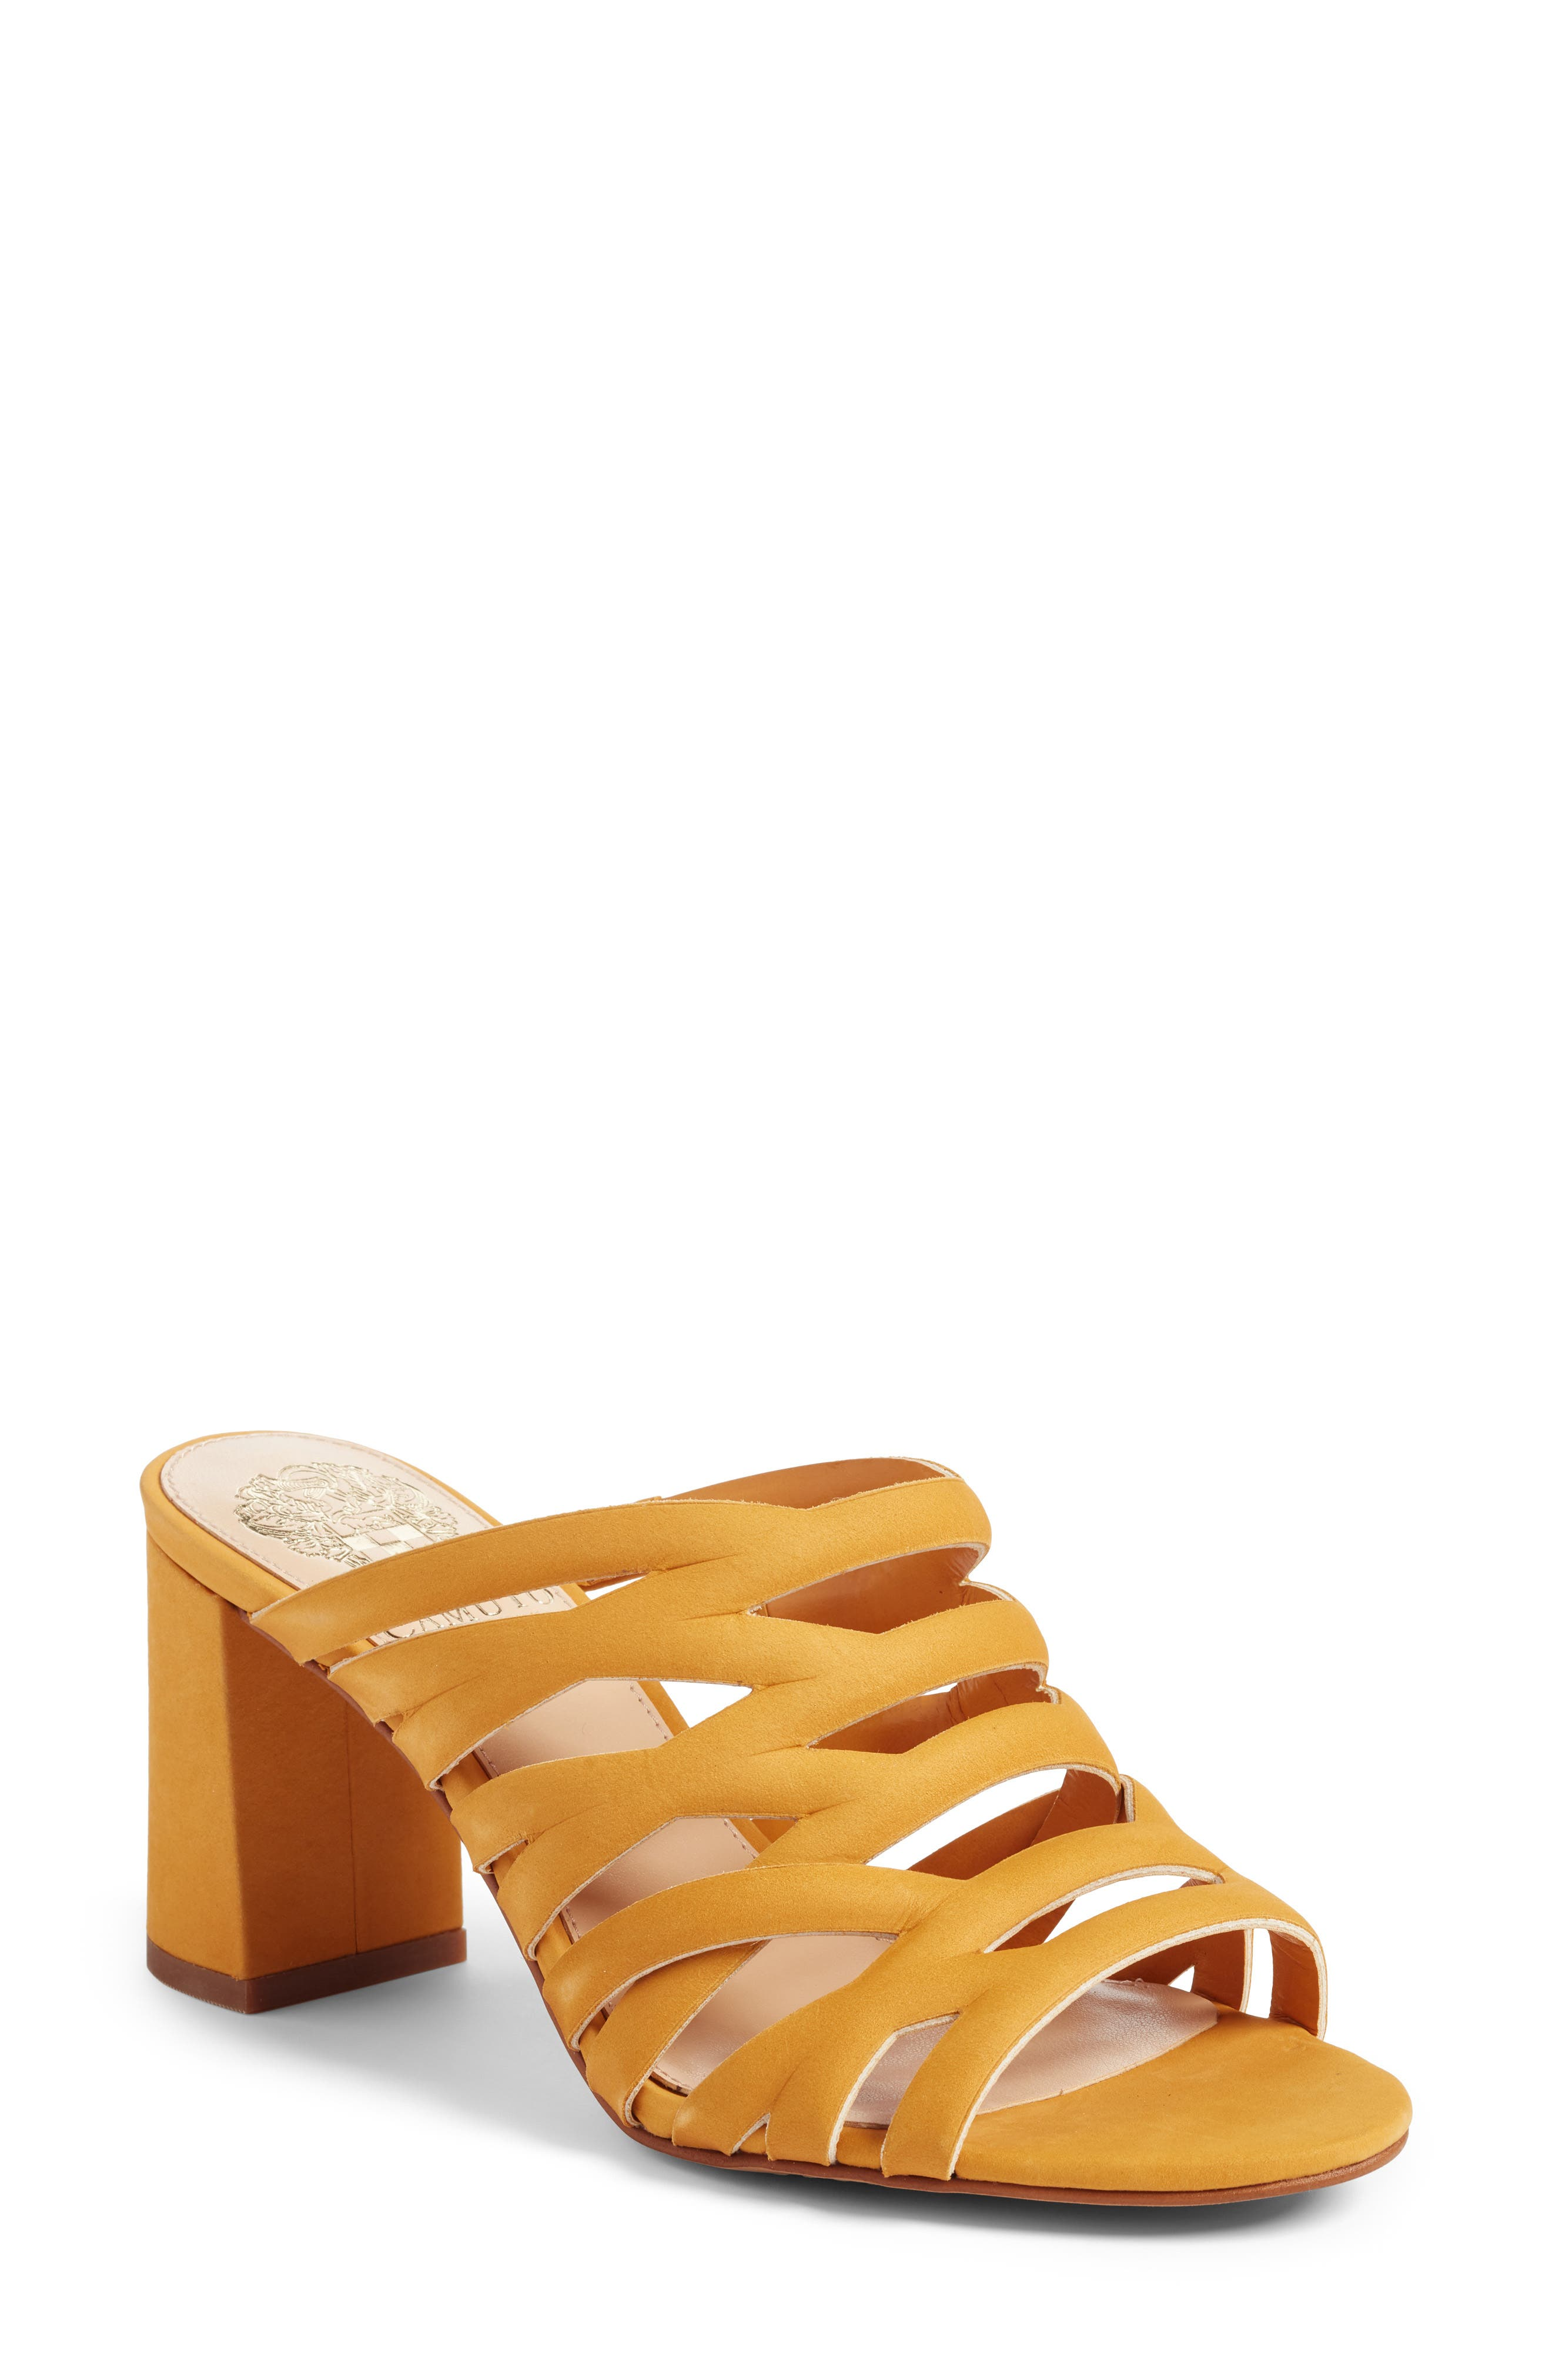 Raveana Cage Mule,                             Main thumbnail 1, color,                             MUSTARD YELLOW LEATHER